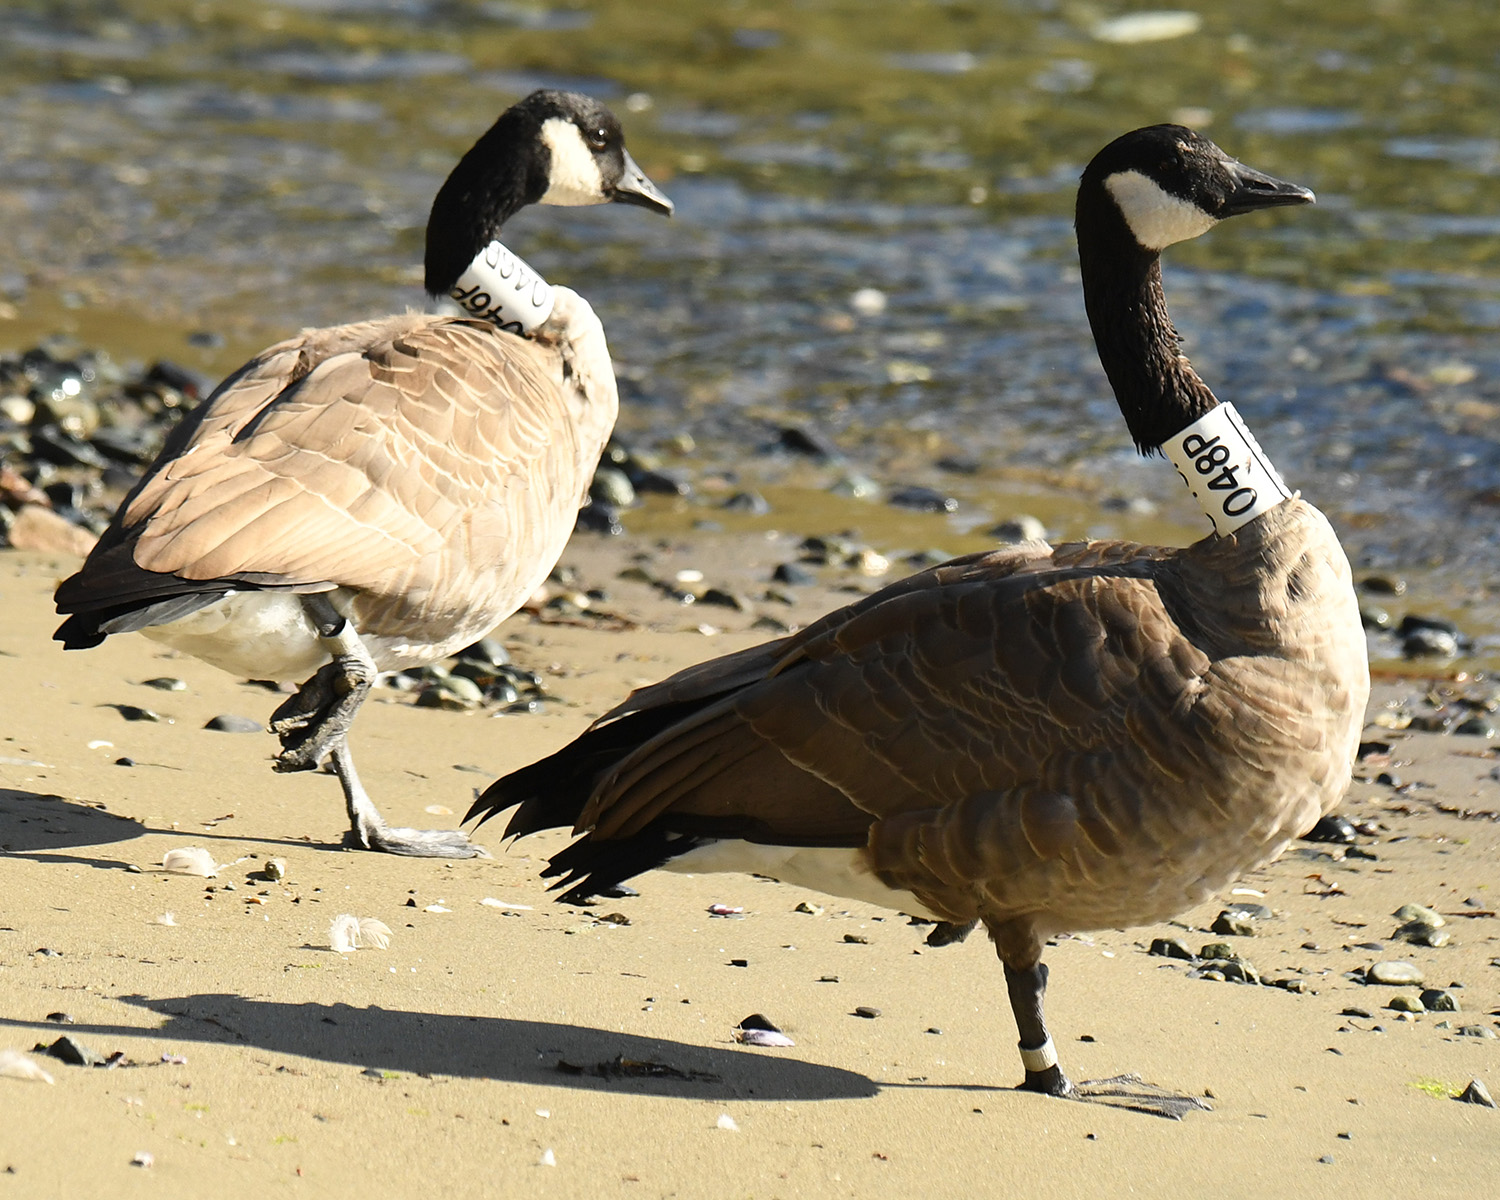 Hammond Bay geese loafing right where they were banded - Morningside Park, Hammond Bay. Photo c/o Ken Langeliers